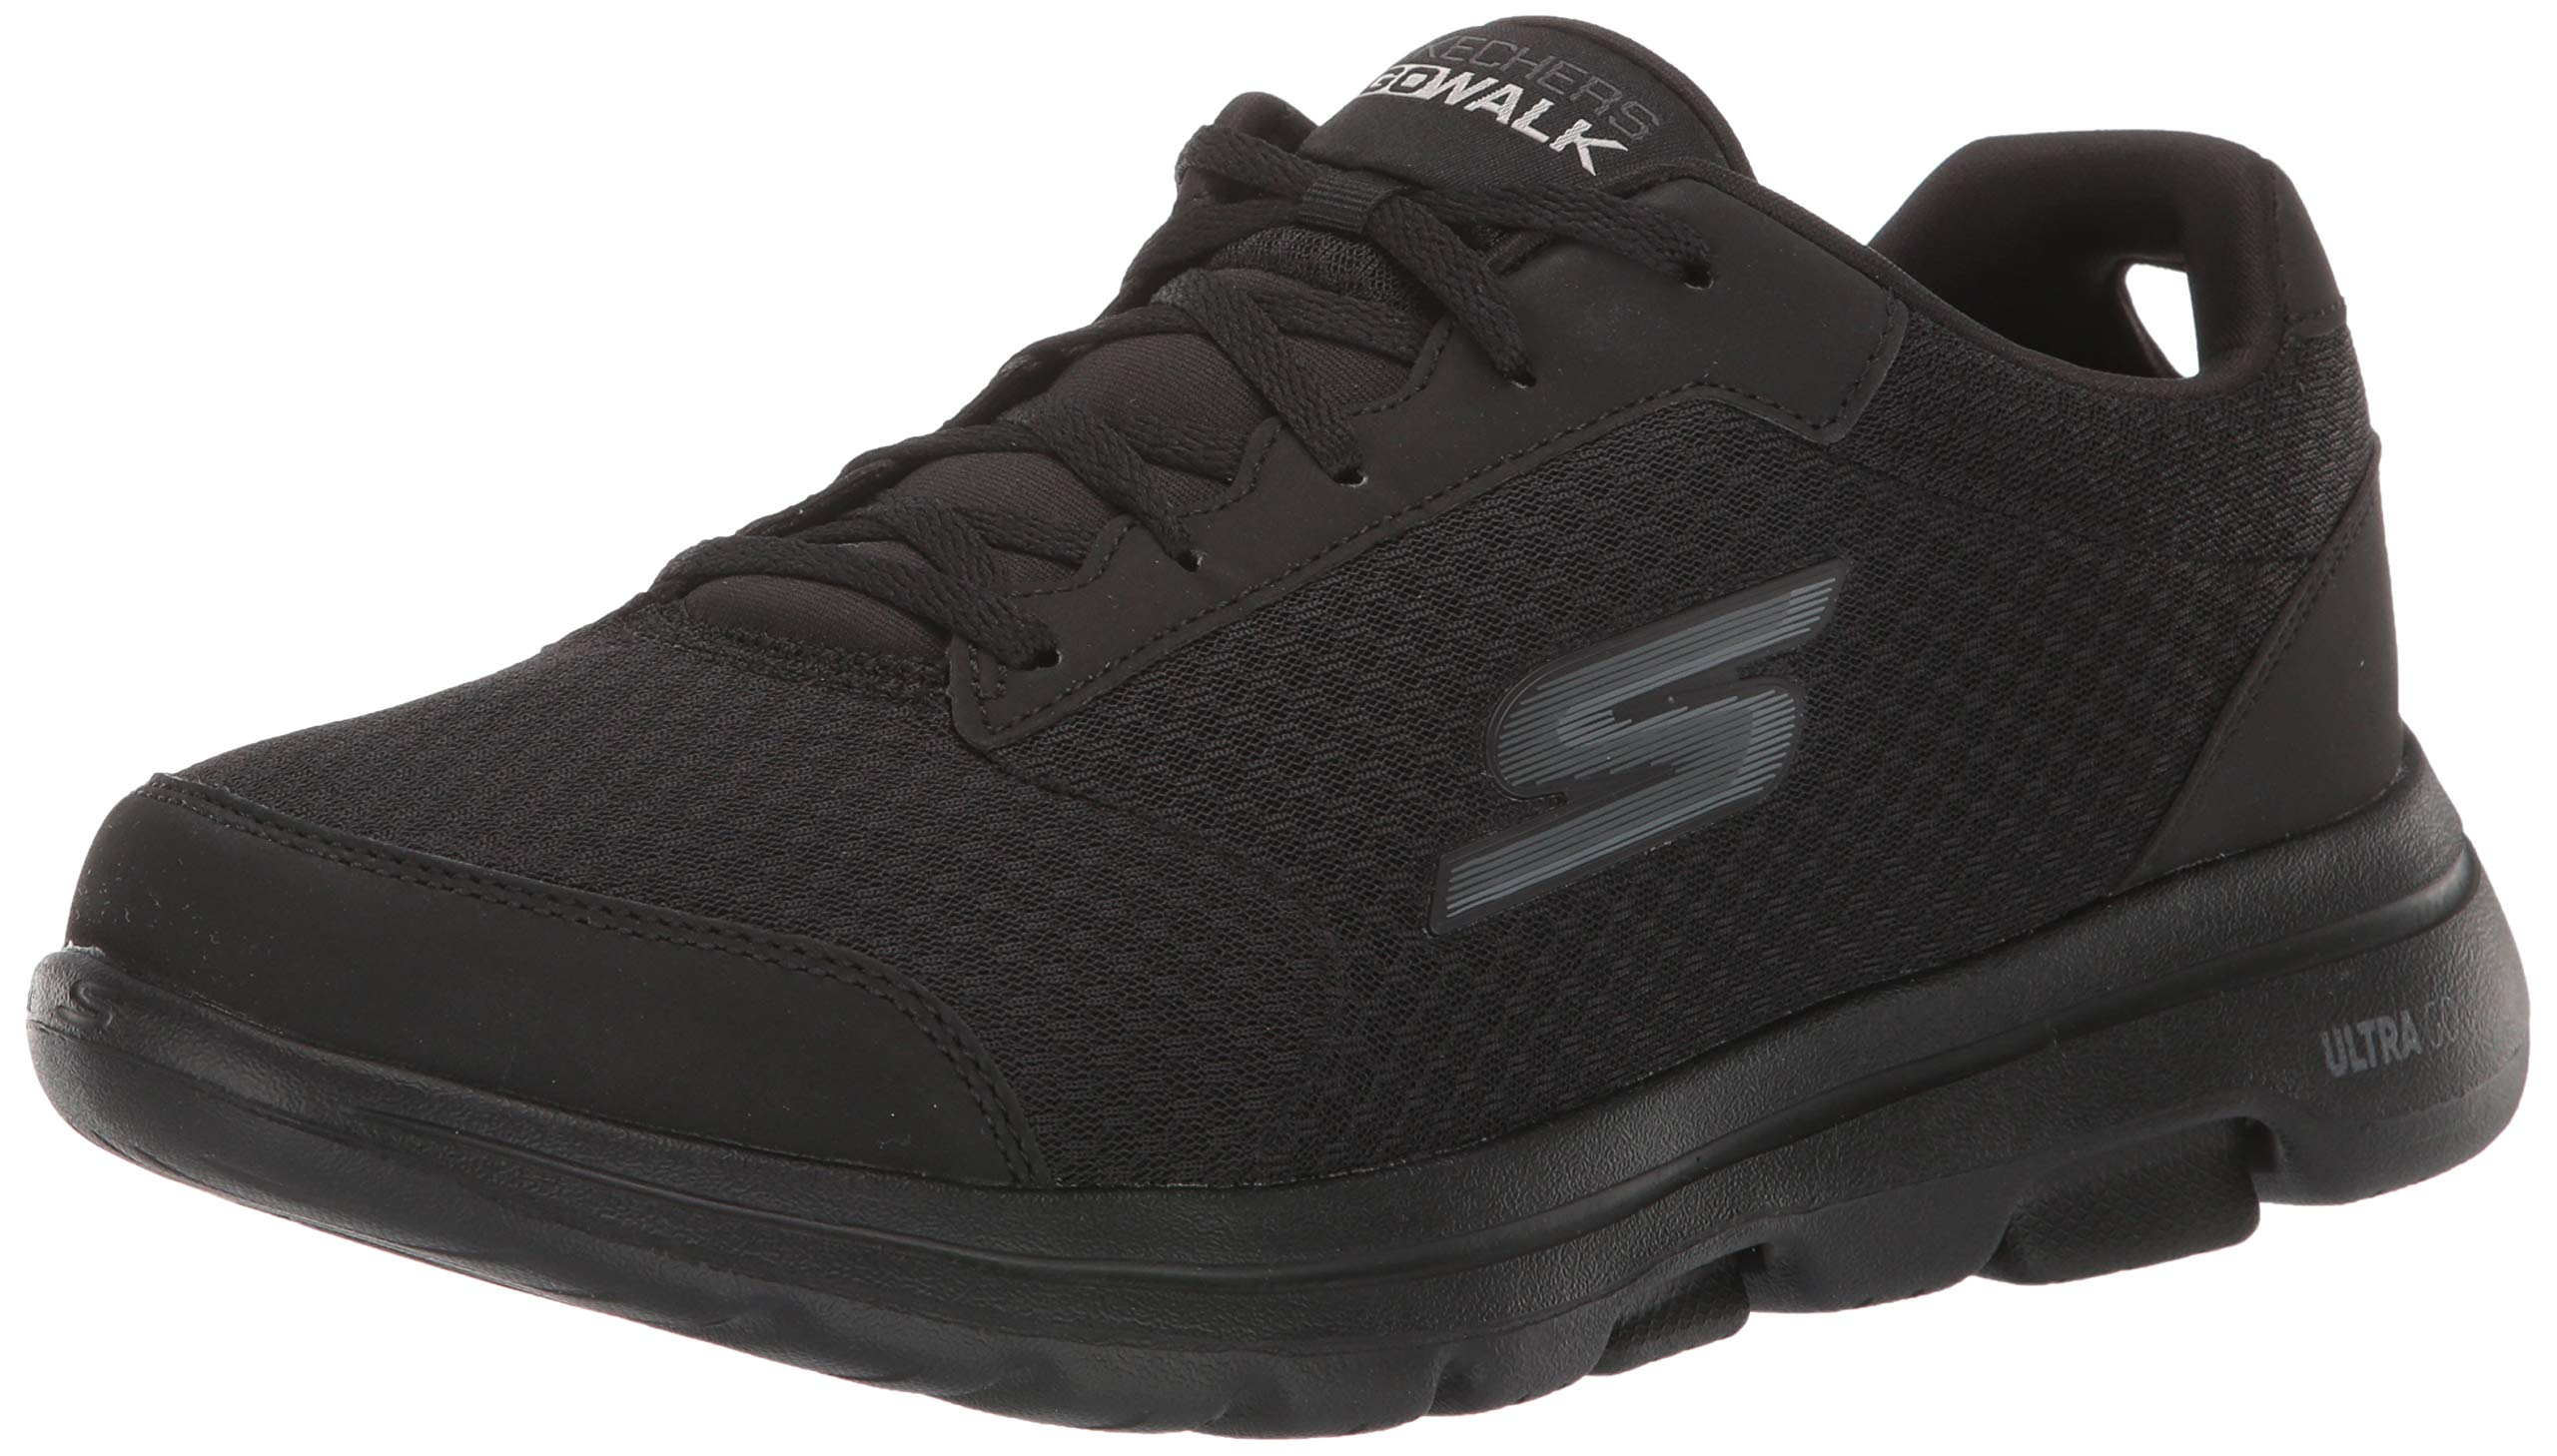 Skechers Men's GO Walk 5 - Qualify Shoe, Black, 11 M US by Skechers